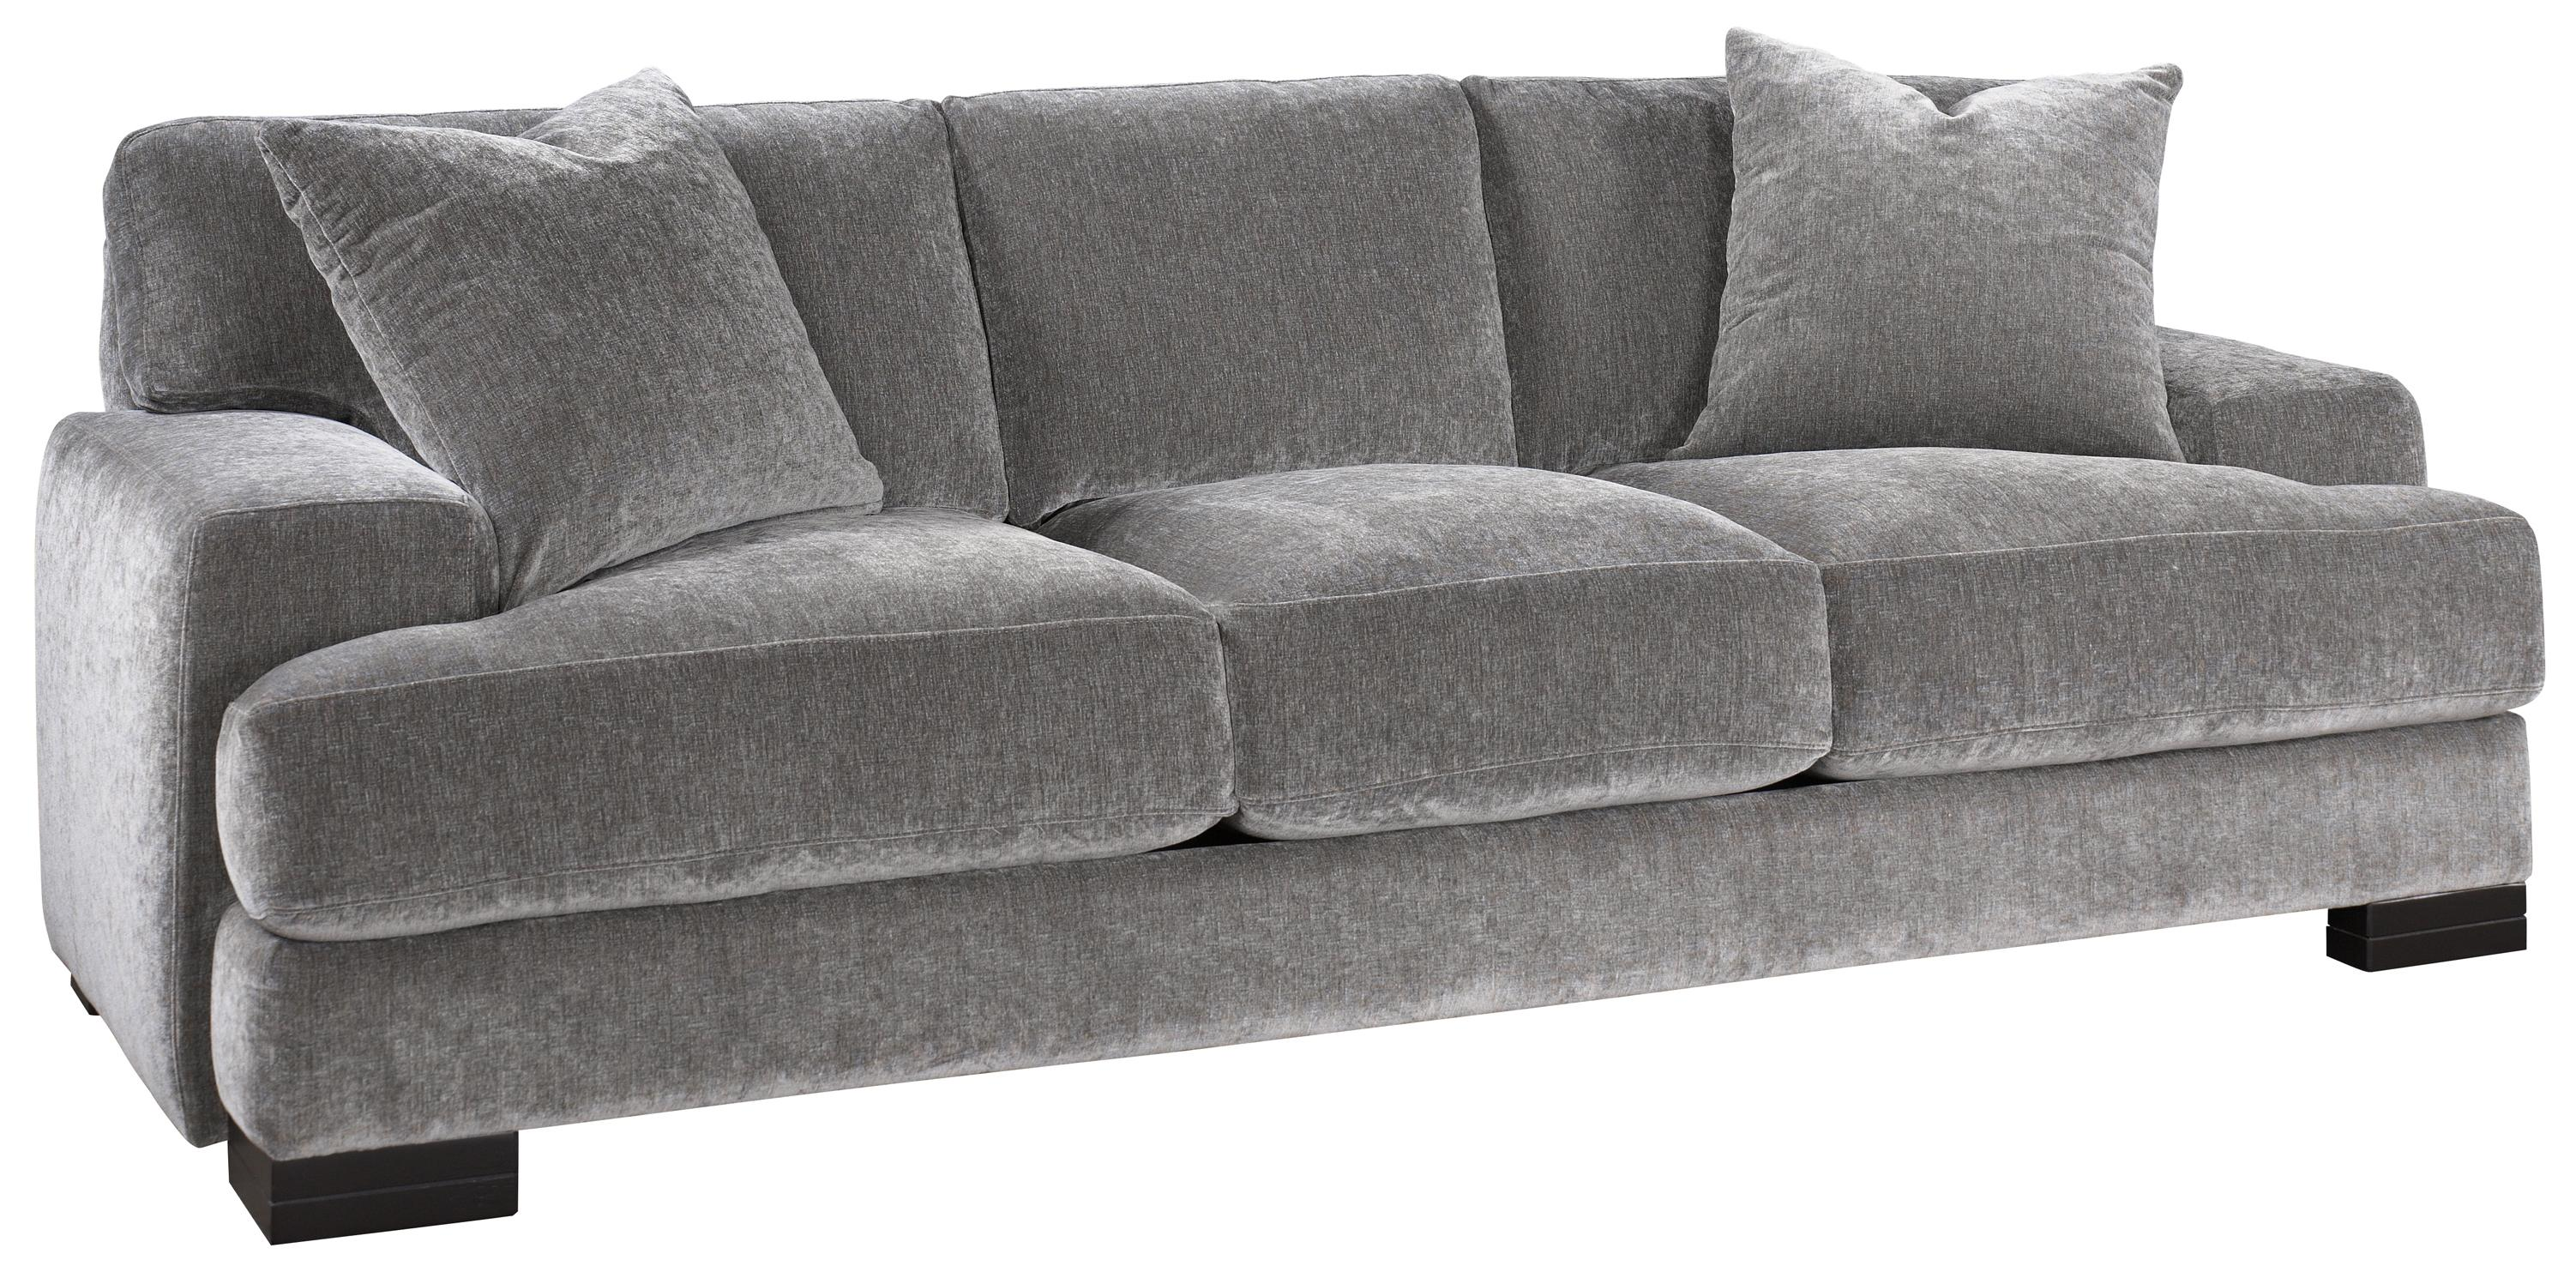 Jonathan Louis Burton Modern Sofa With Low Track Arms And Exposed Wood Feet